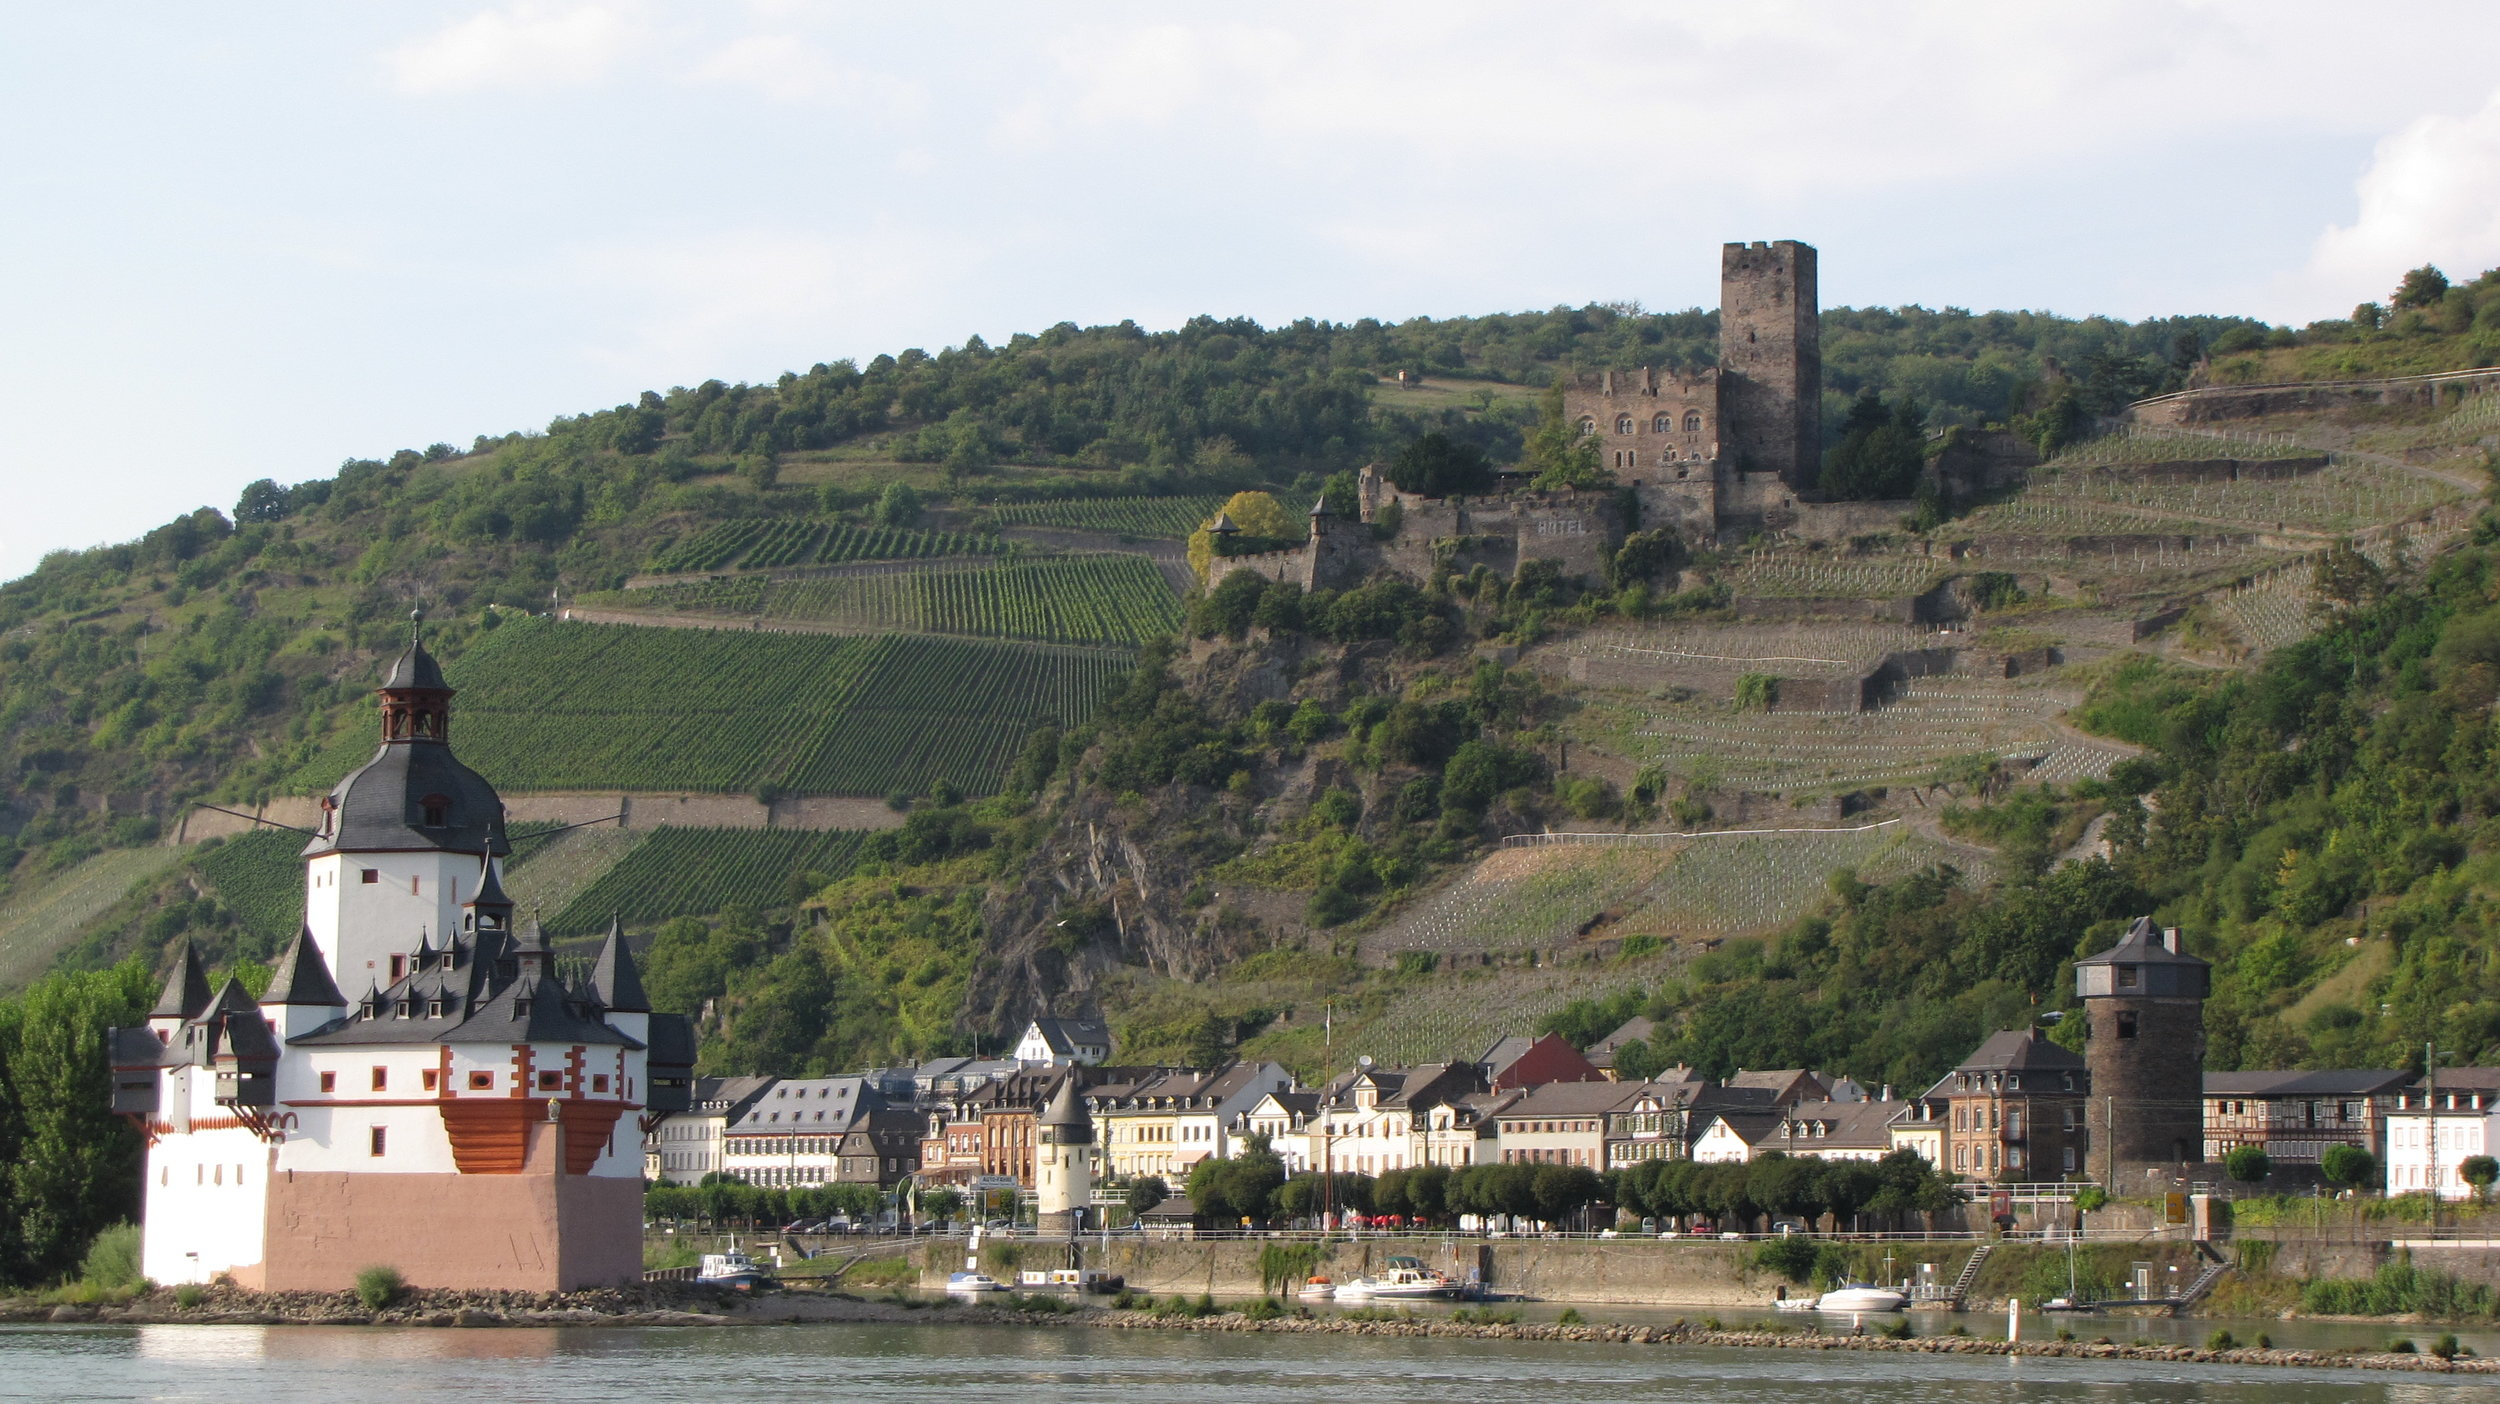 Castles on the Rhine—Awesome!